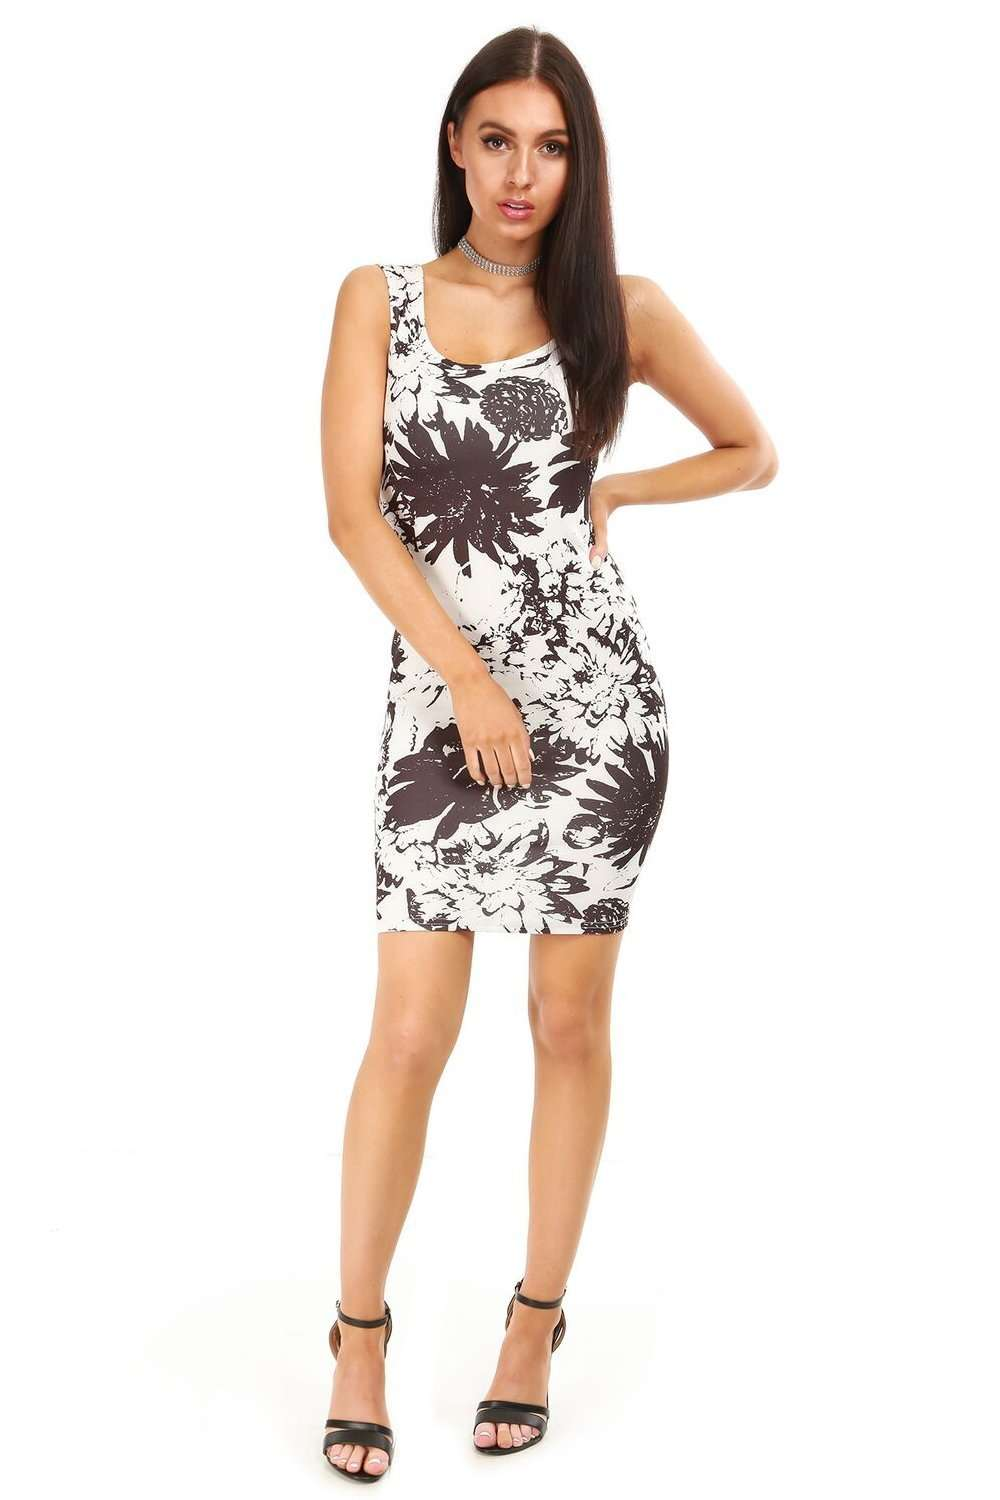 Rhianne Monochrome Floral Bodycon Mini Dress - bejealous-com